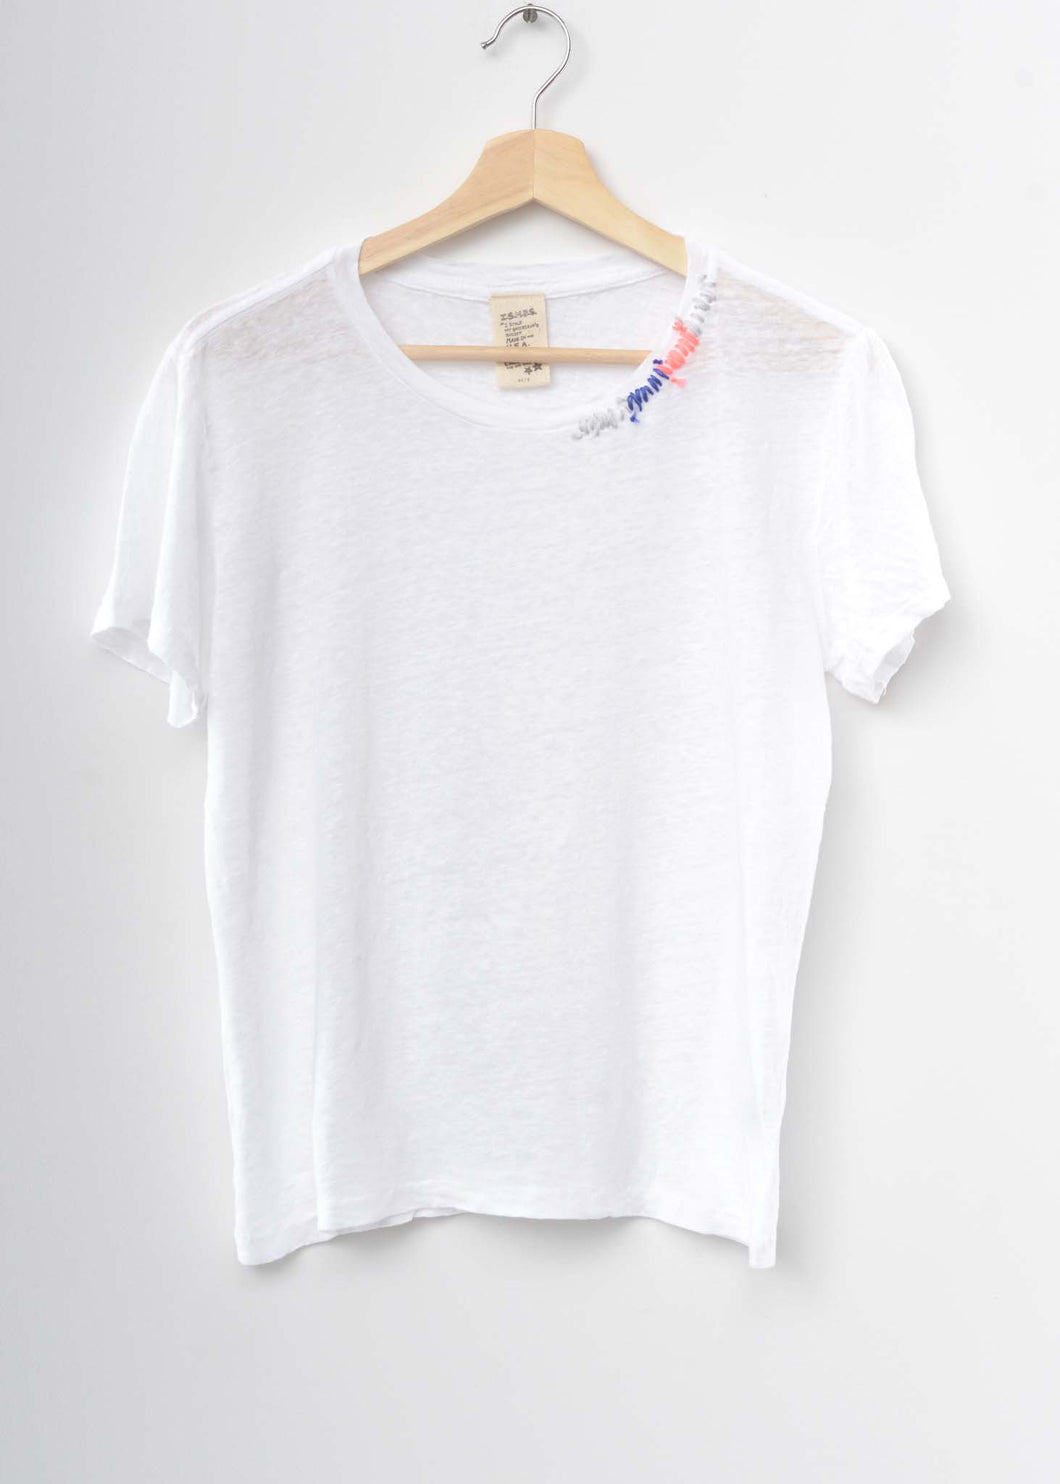 Ombre Stitched Planet Tee-White